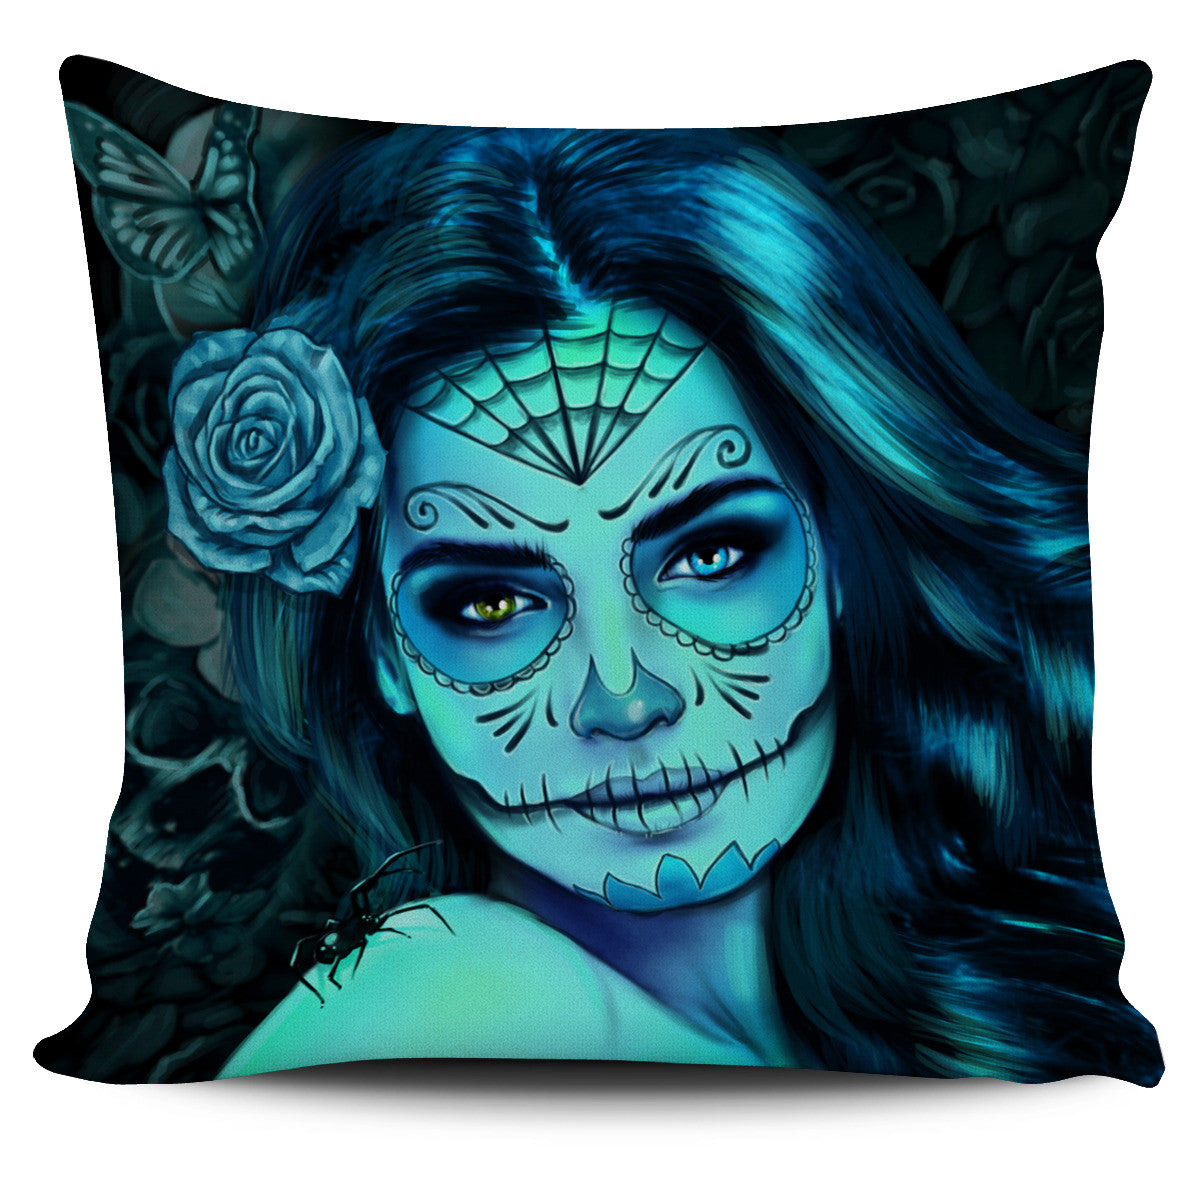 Blue Calavena Girl Pillow Cover